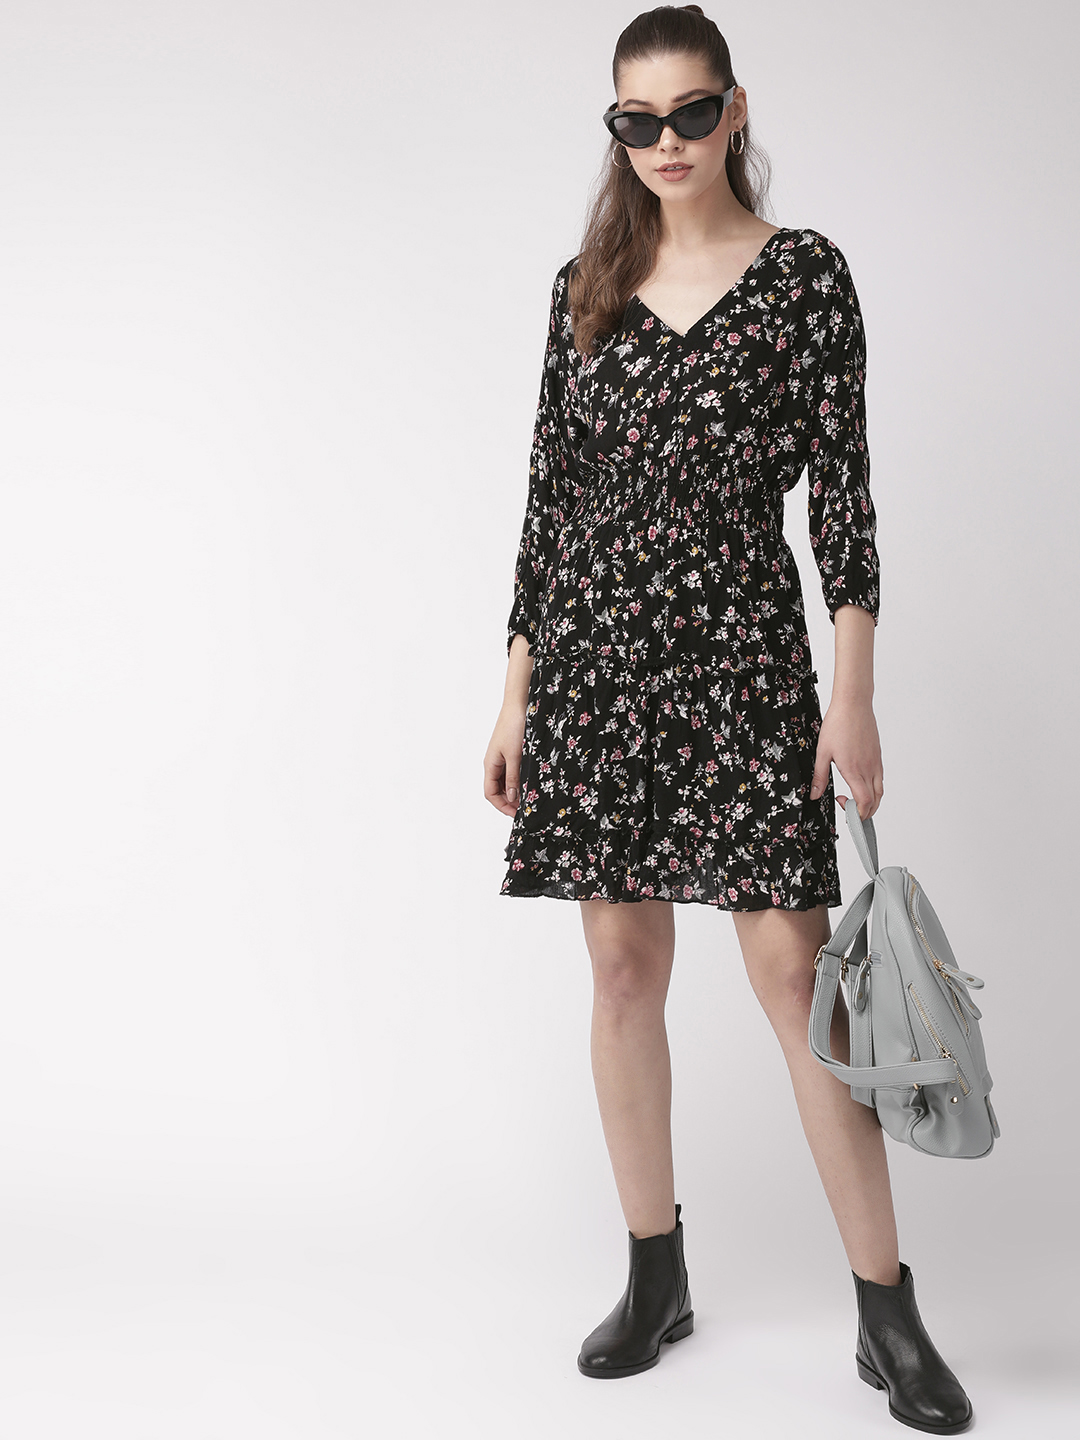 Dresses-Floral My Sweetheart Dress5